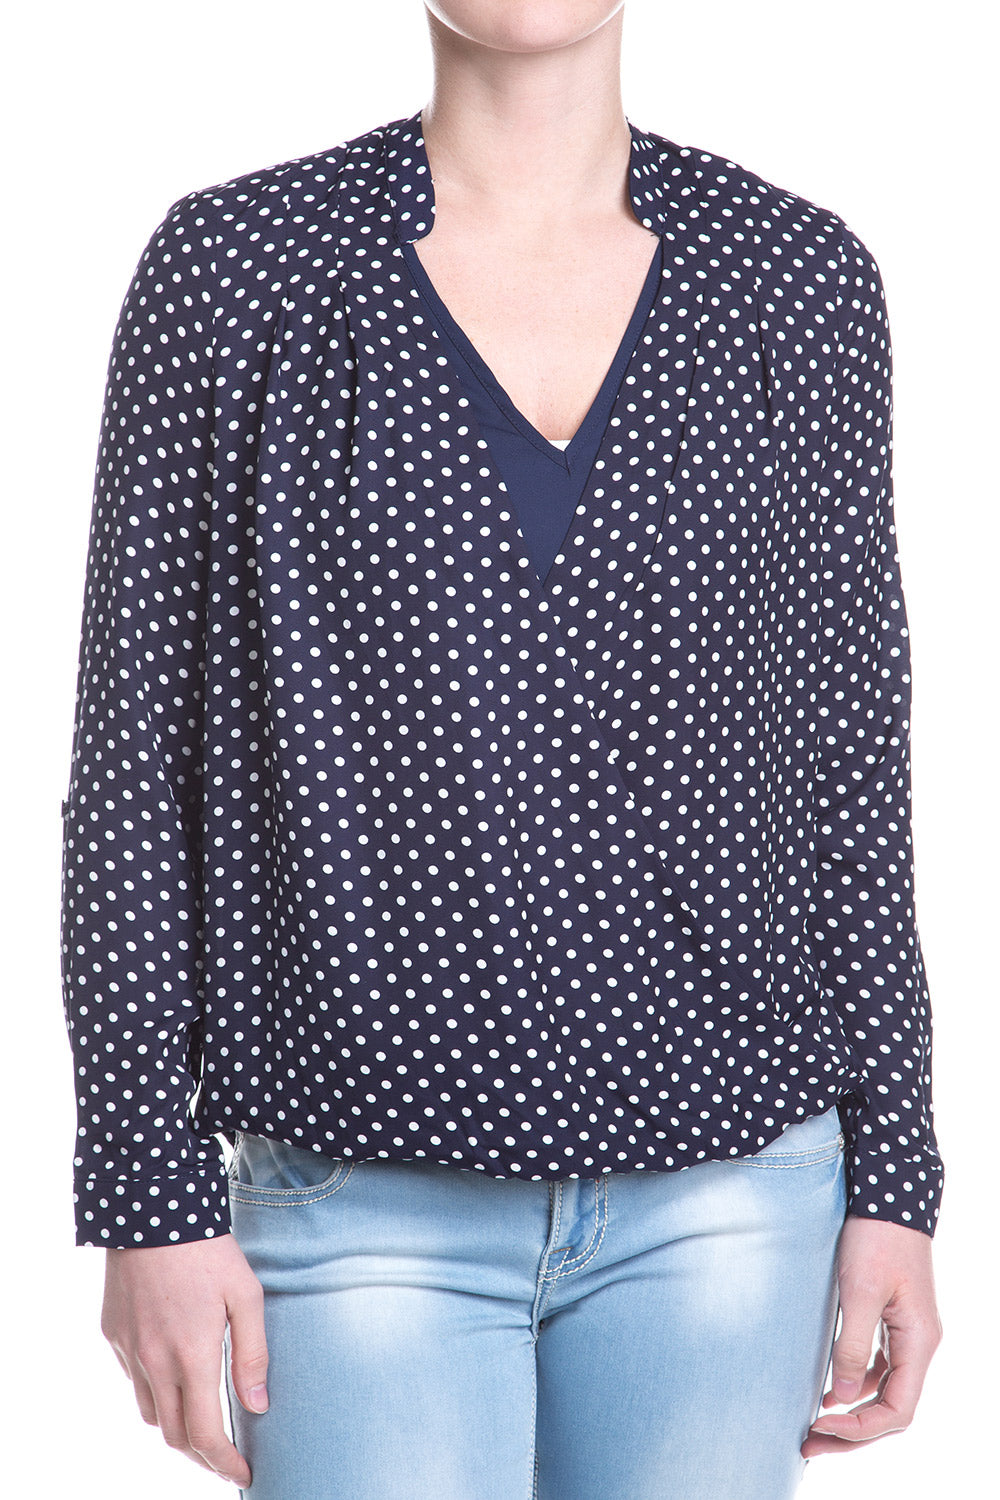 Type 1 Wrap Around Polka Top